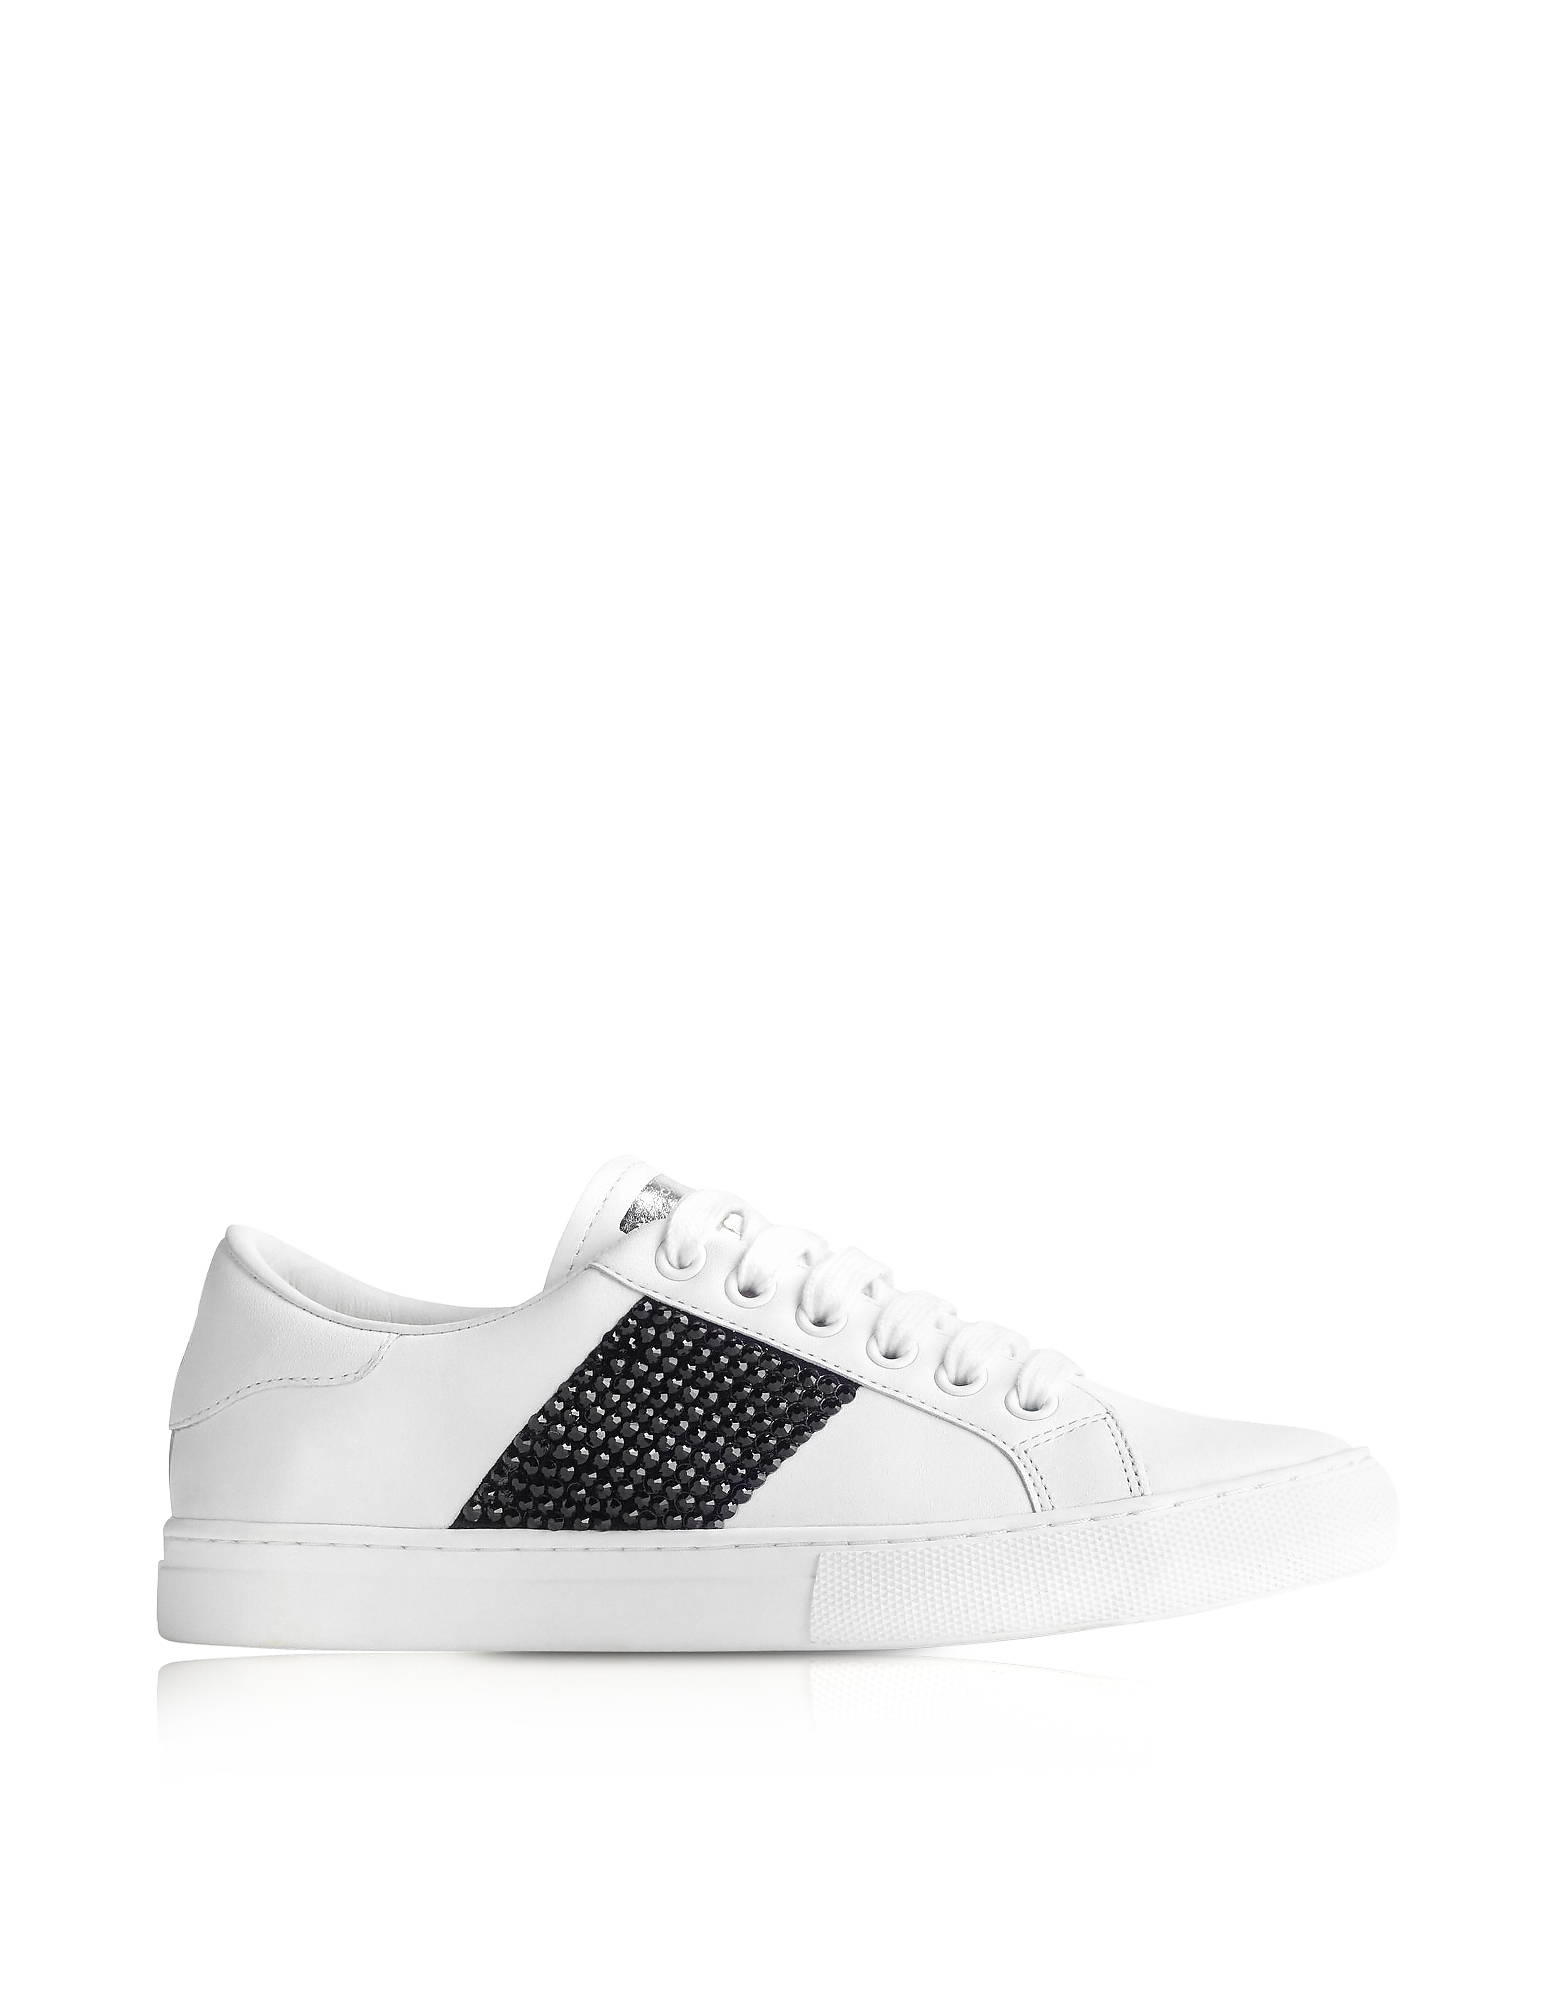 Marc Jacobs Shoes, Black Crystal White Leather Empire Low Top Sneaker